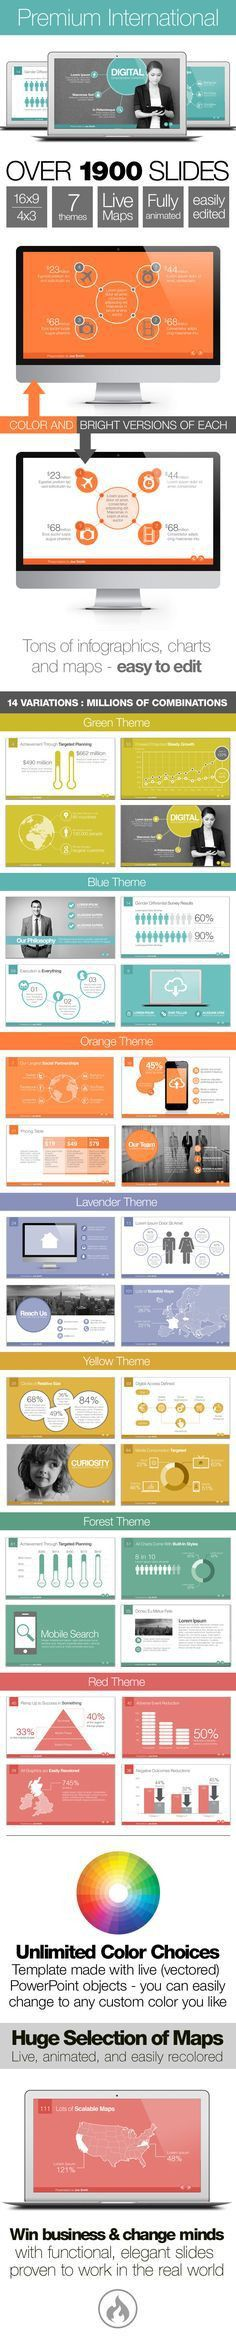 Stampede - Multipurpose Powerpoint Template | Business powerpoint ...